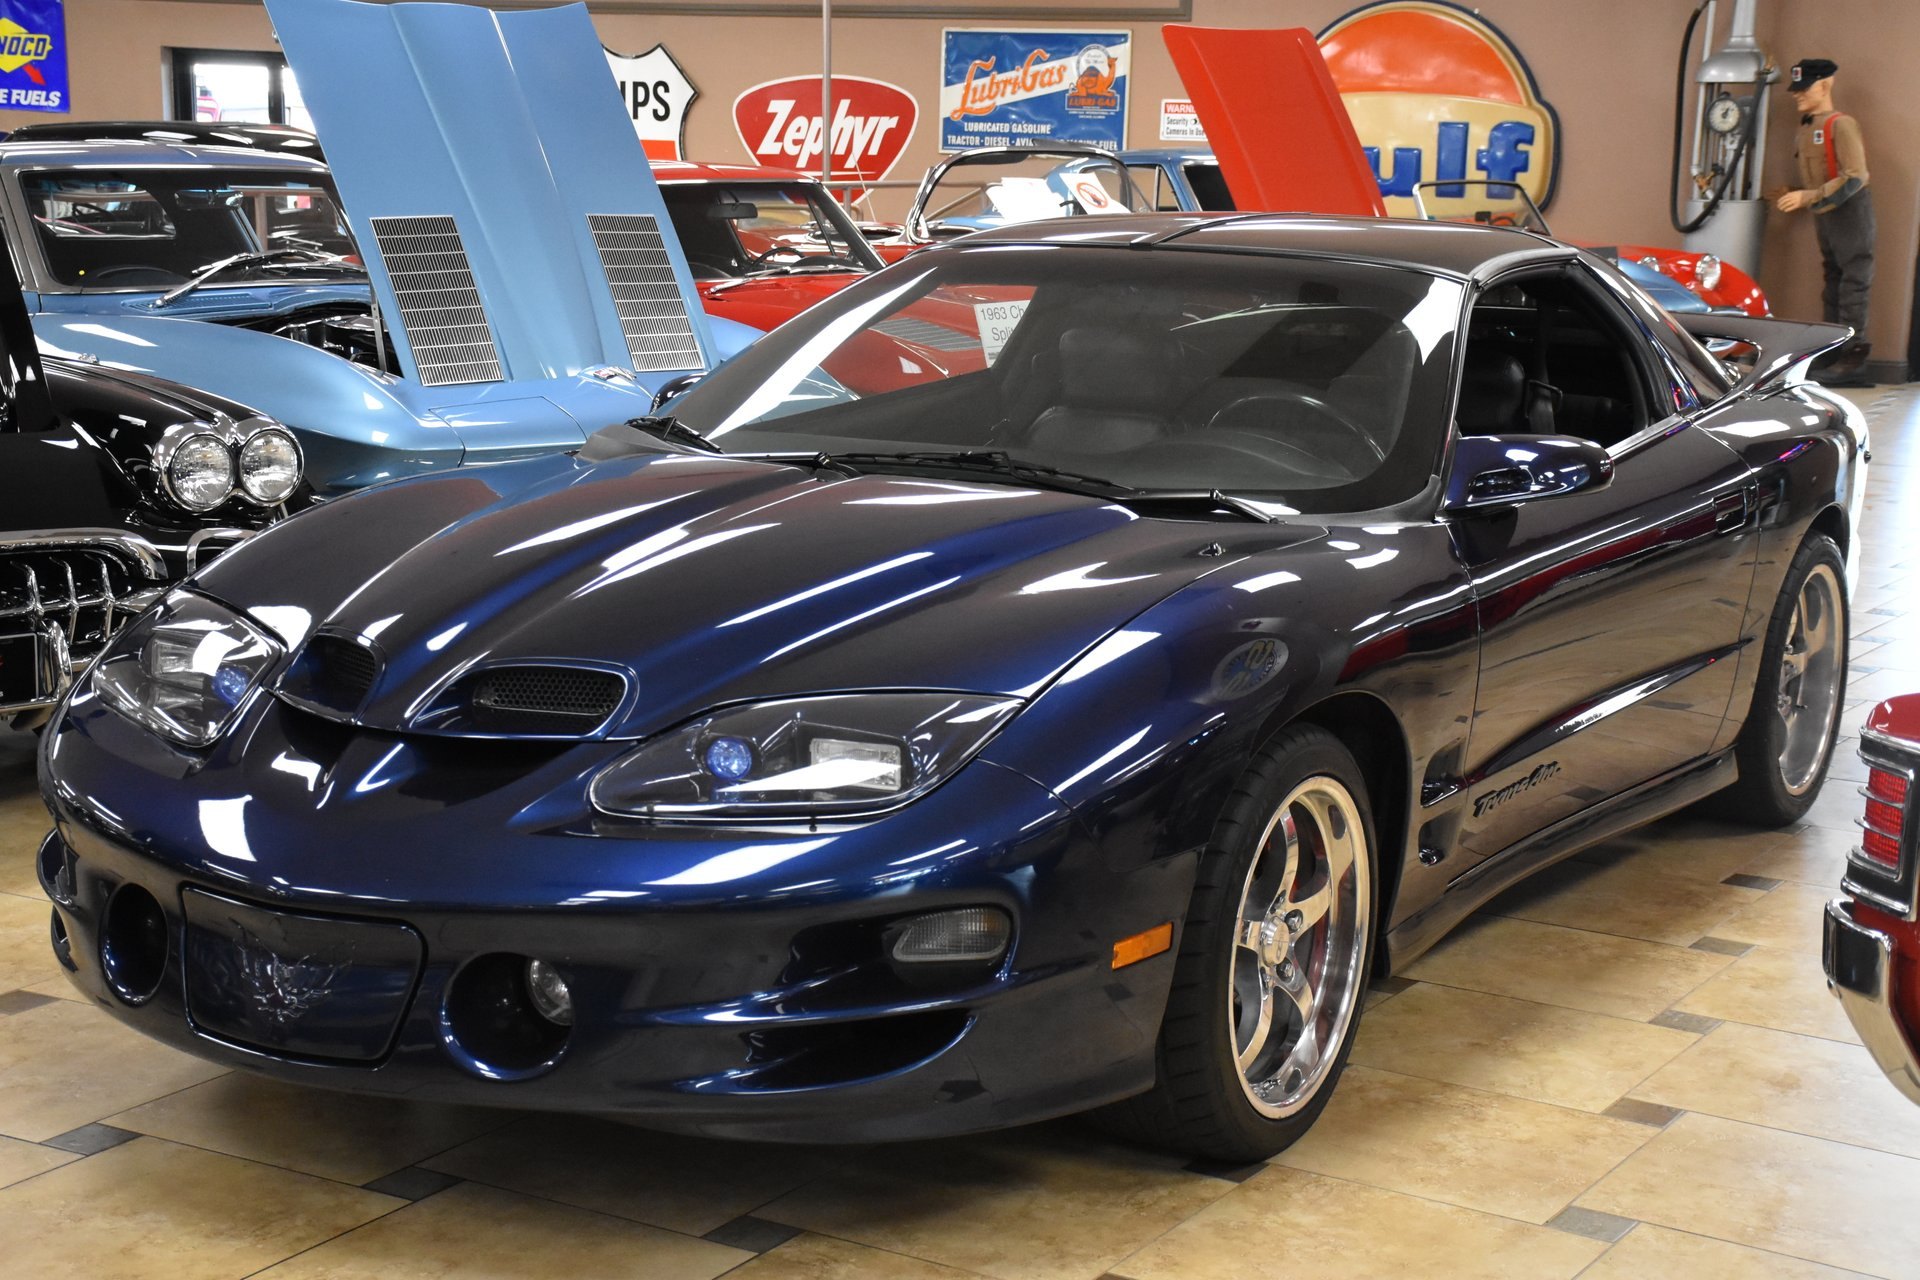 2000 Pontiac Firebird Ideal Classic Cars Llc